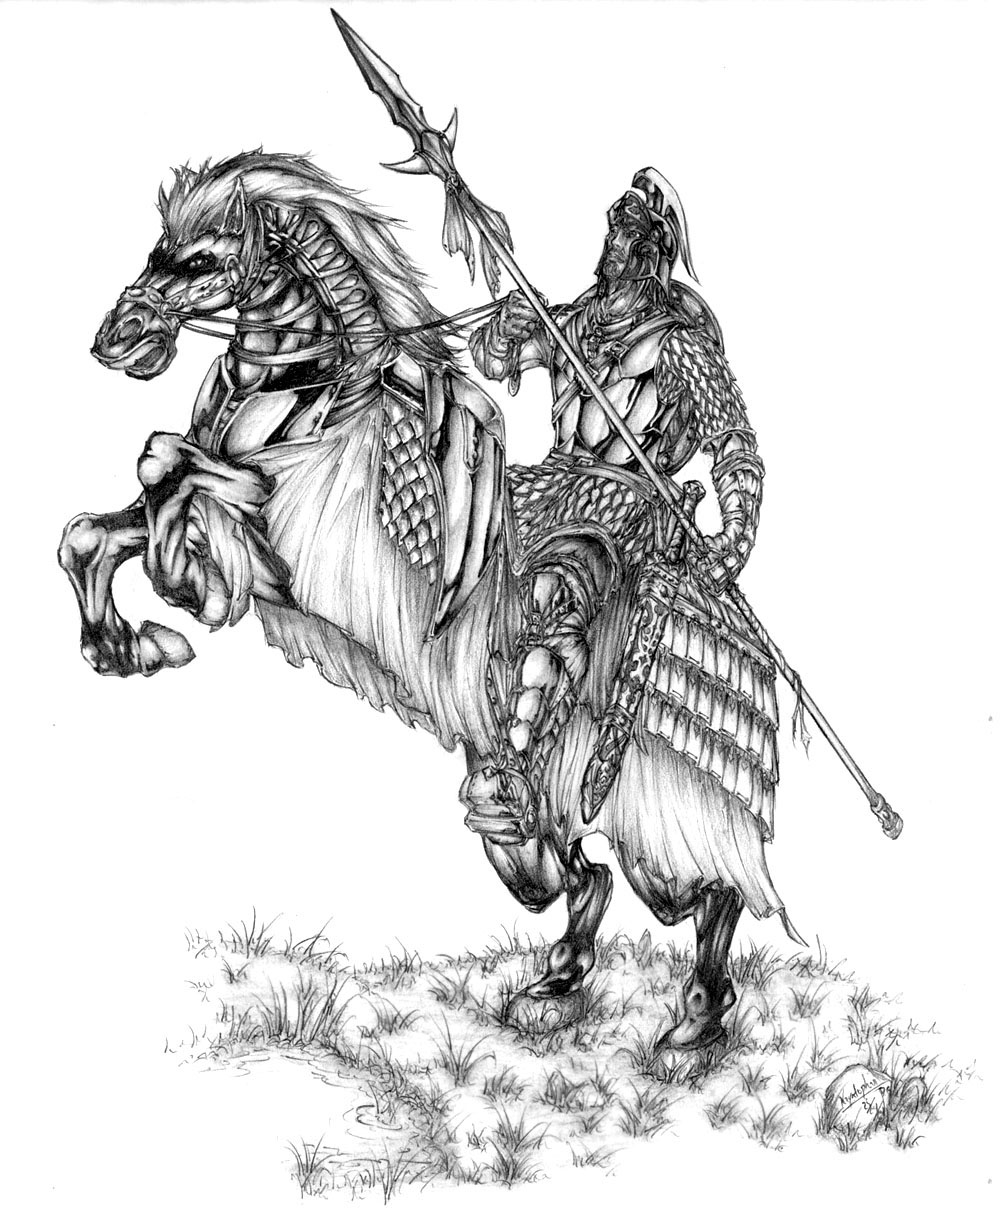 knight on a horse drawing knight class by nelsonblakeii on deviantart on horse drawing knight a